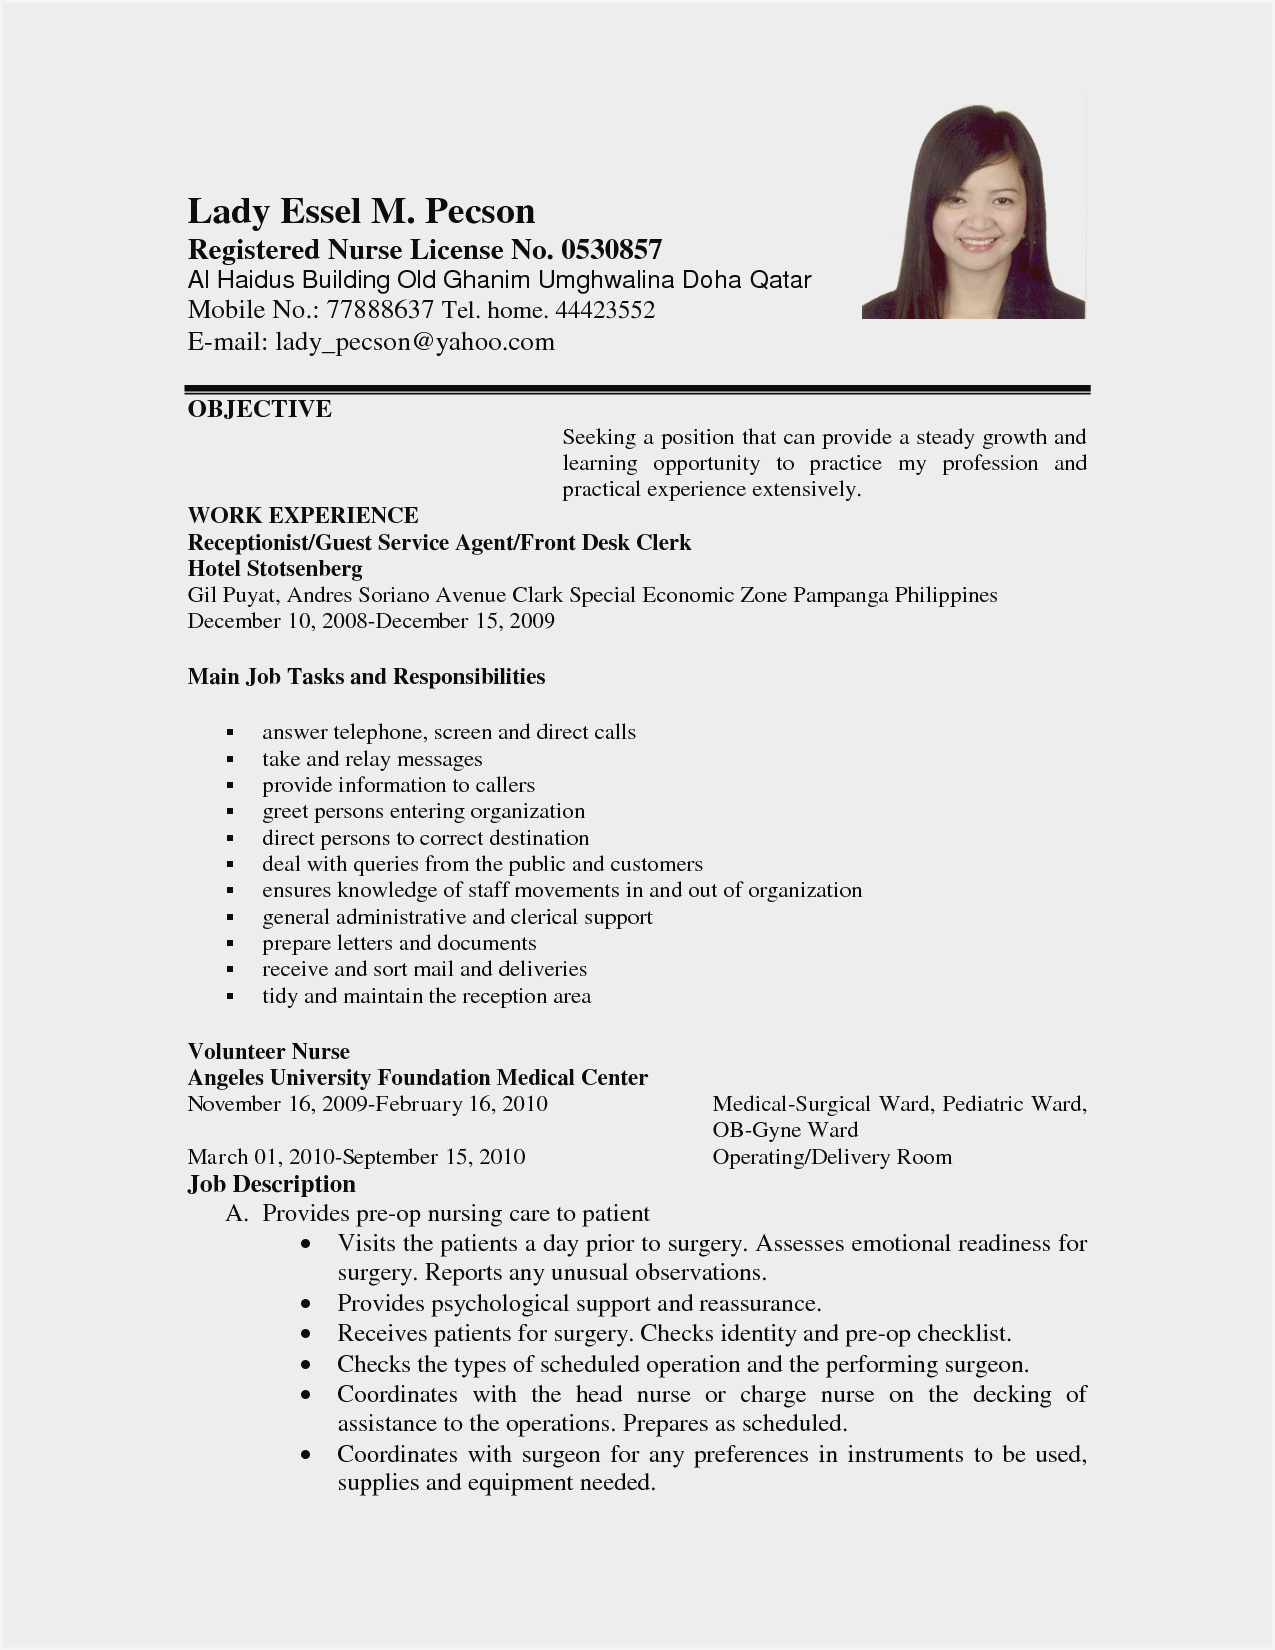 sample resume format for work abroad application and now sign up job email subject rpi Resume Application And Resume Sample